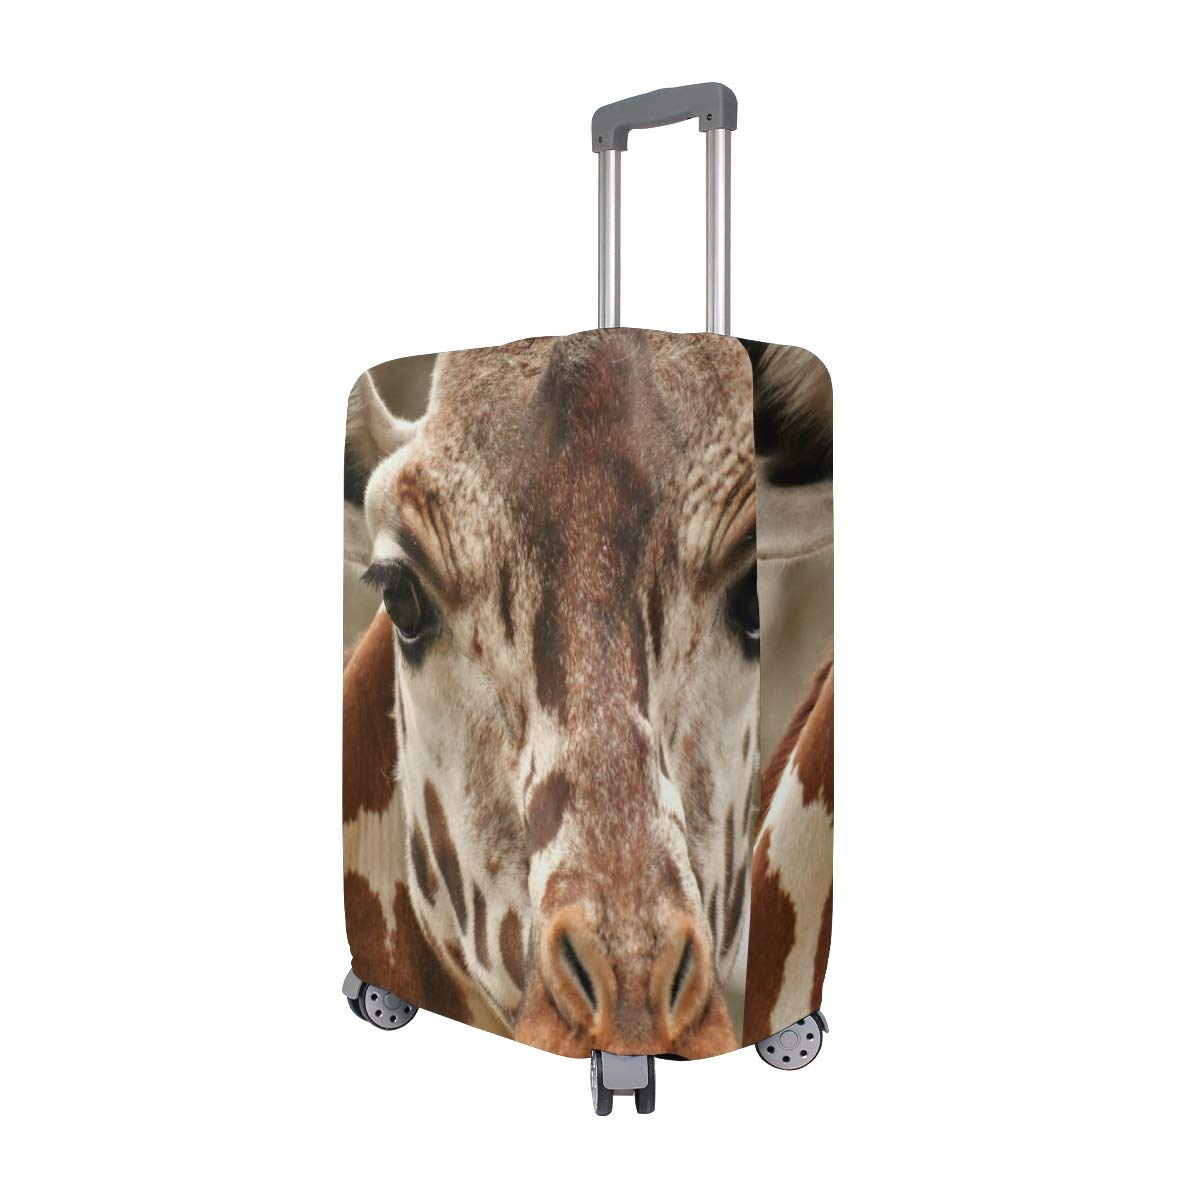 Baggage Covers Giraffe Head Animal Zoo Washable Protective Case